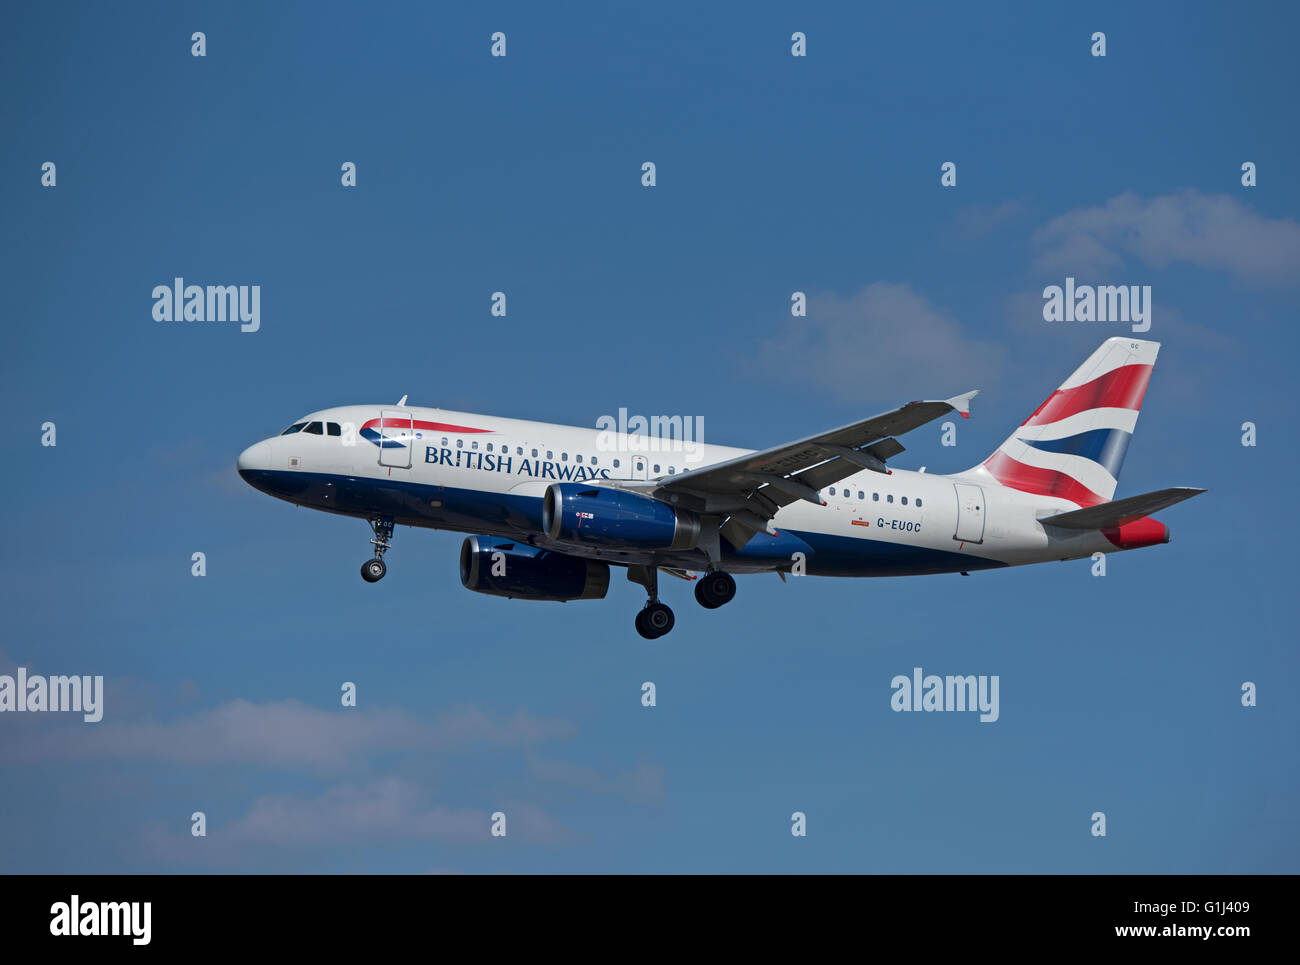 British Airways Airbus Civil Passenger Aircraft A 319-131 Reg (G-EUOC) coming into LHR London Heathrow.  SCO 10,375. Stock Photo